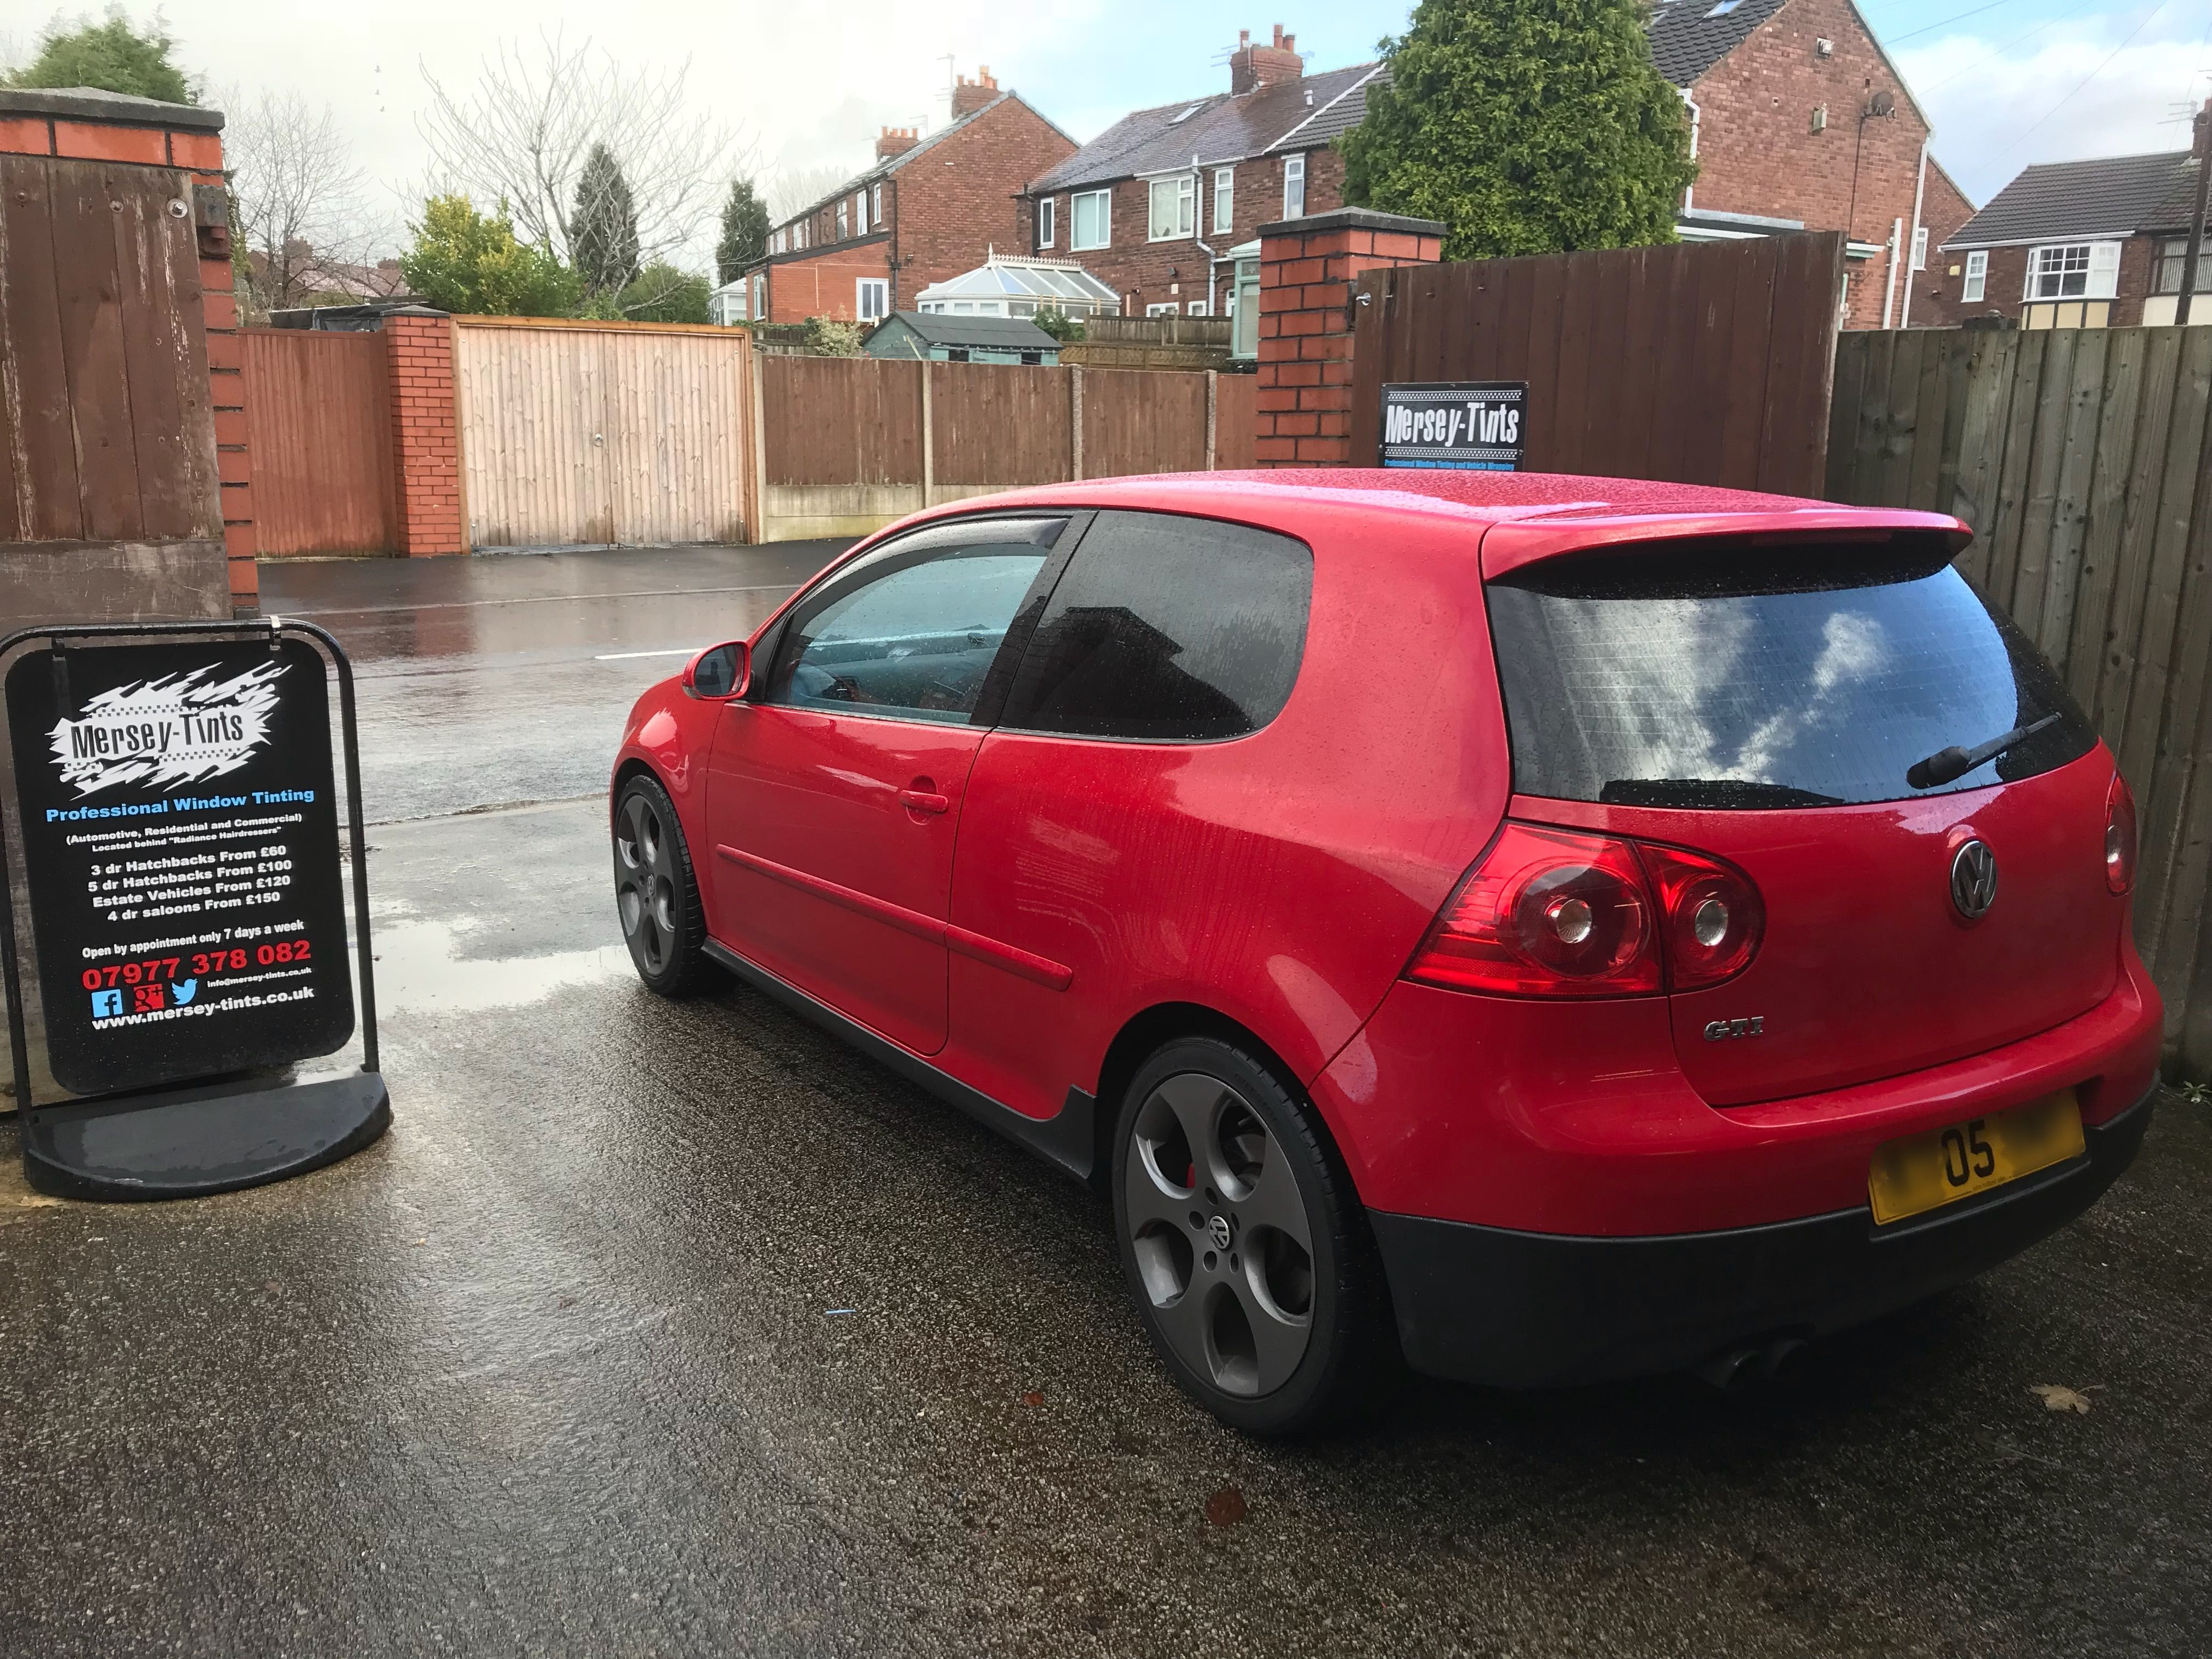 2005 Mk5 Vw Golf Gti In This Morning 5 Carbon Limo Tints To The